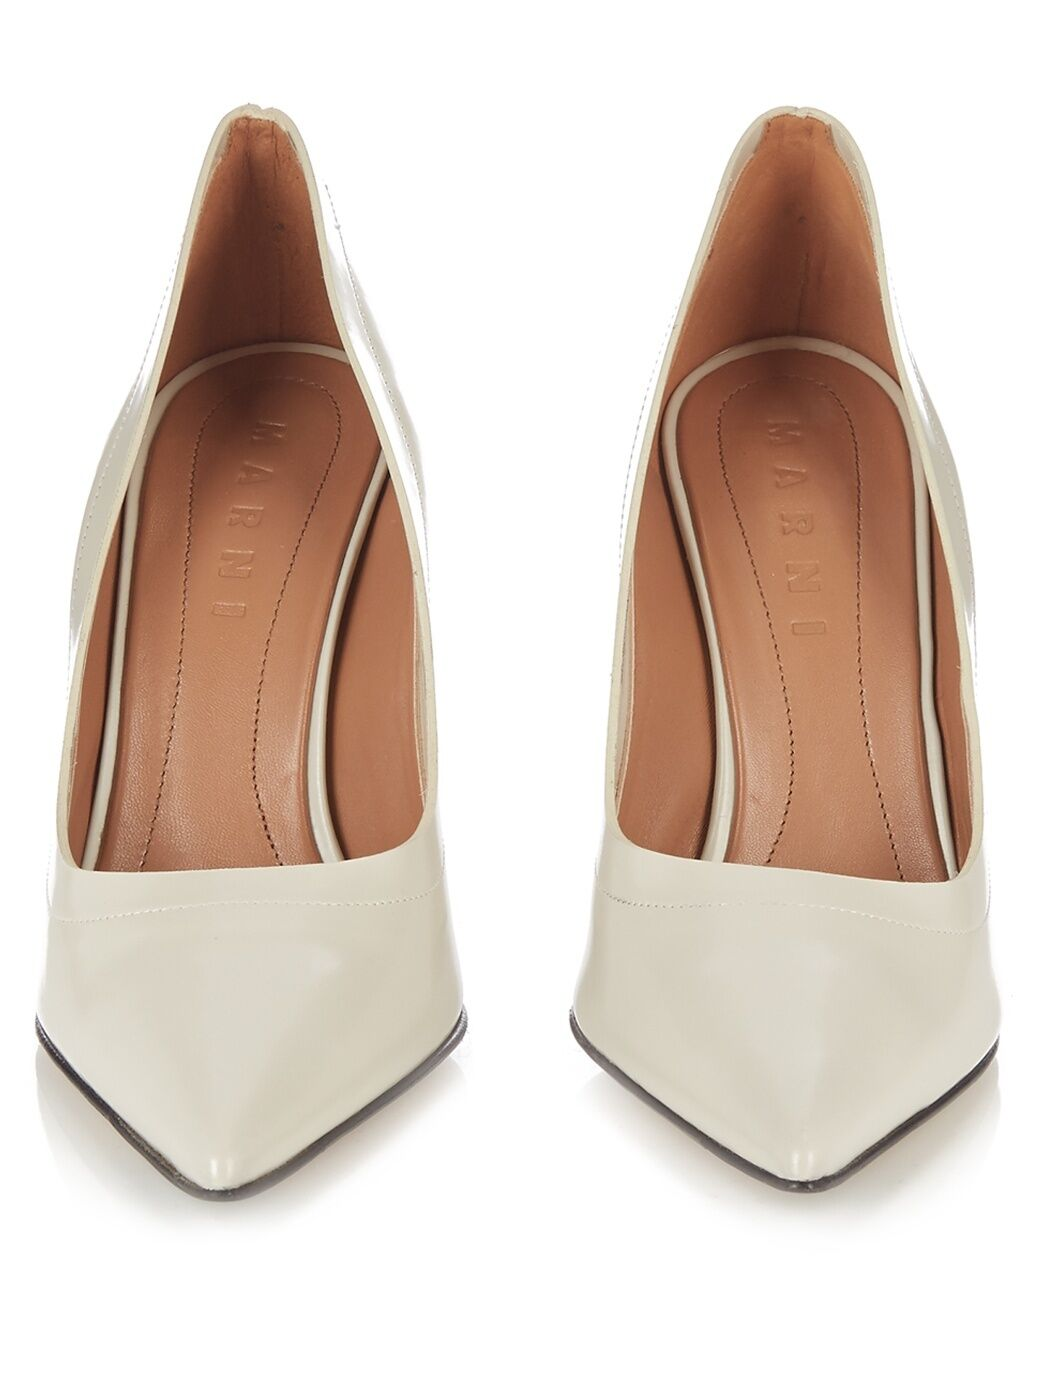 1390 Marni Sculpted Heel Ivory Leather Pump Pointy Pointy Pointy Toe schuhe 39.5- 8.5 6aad79